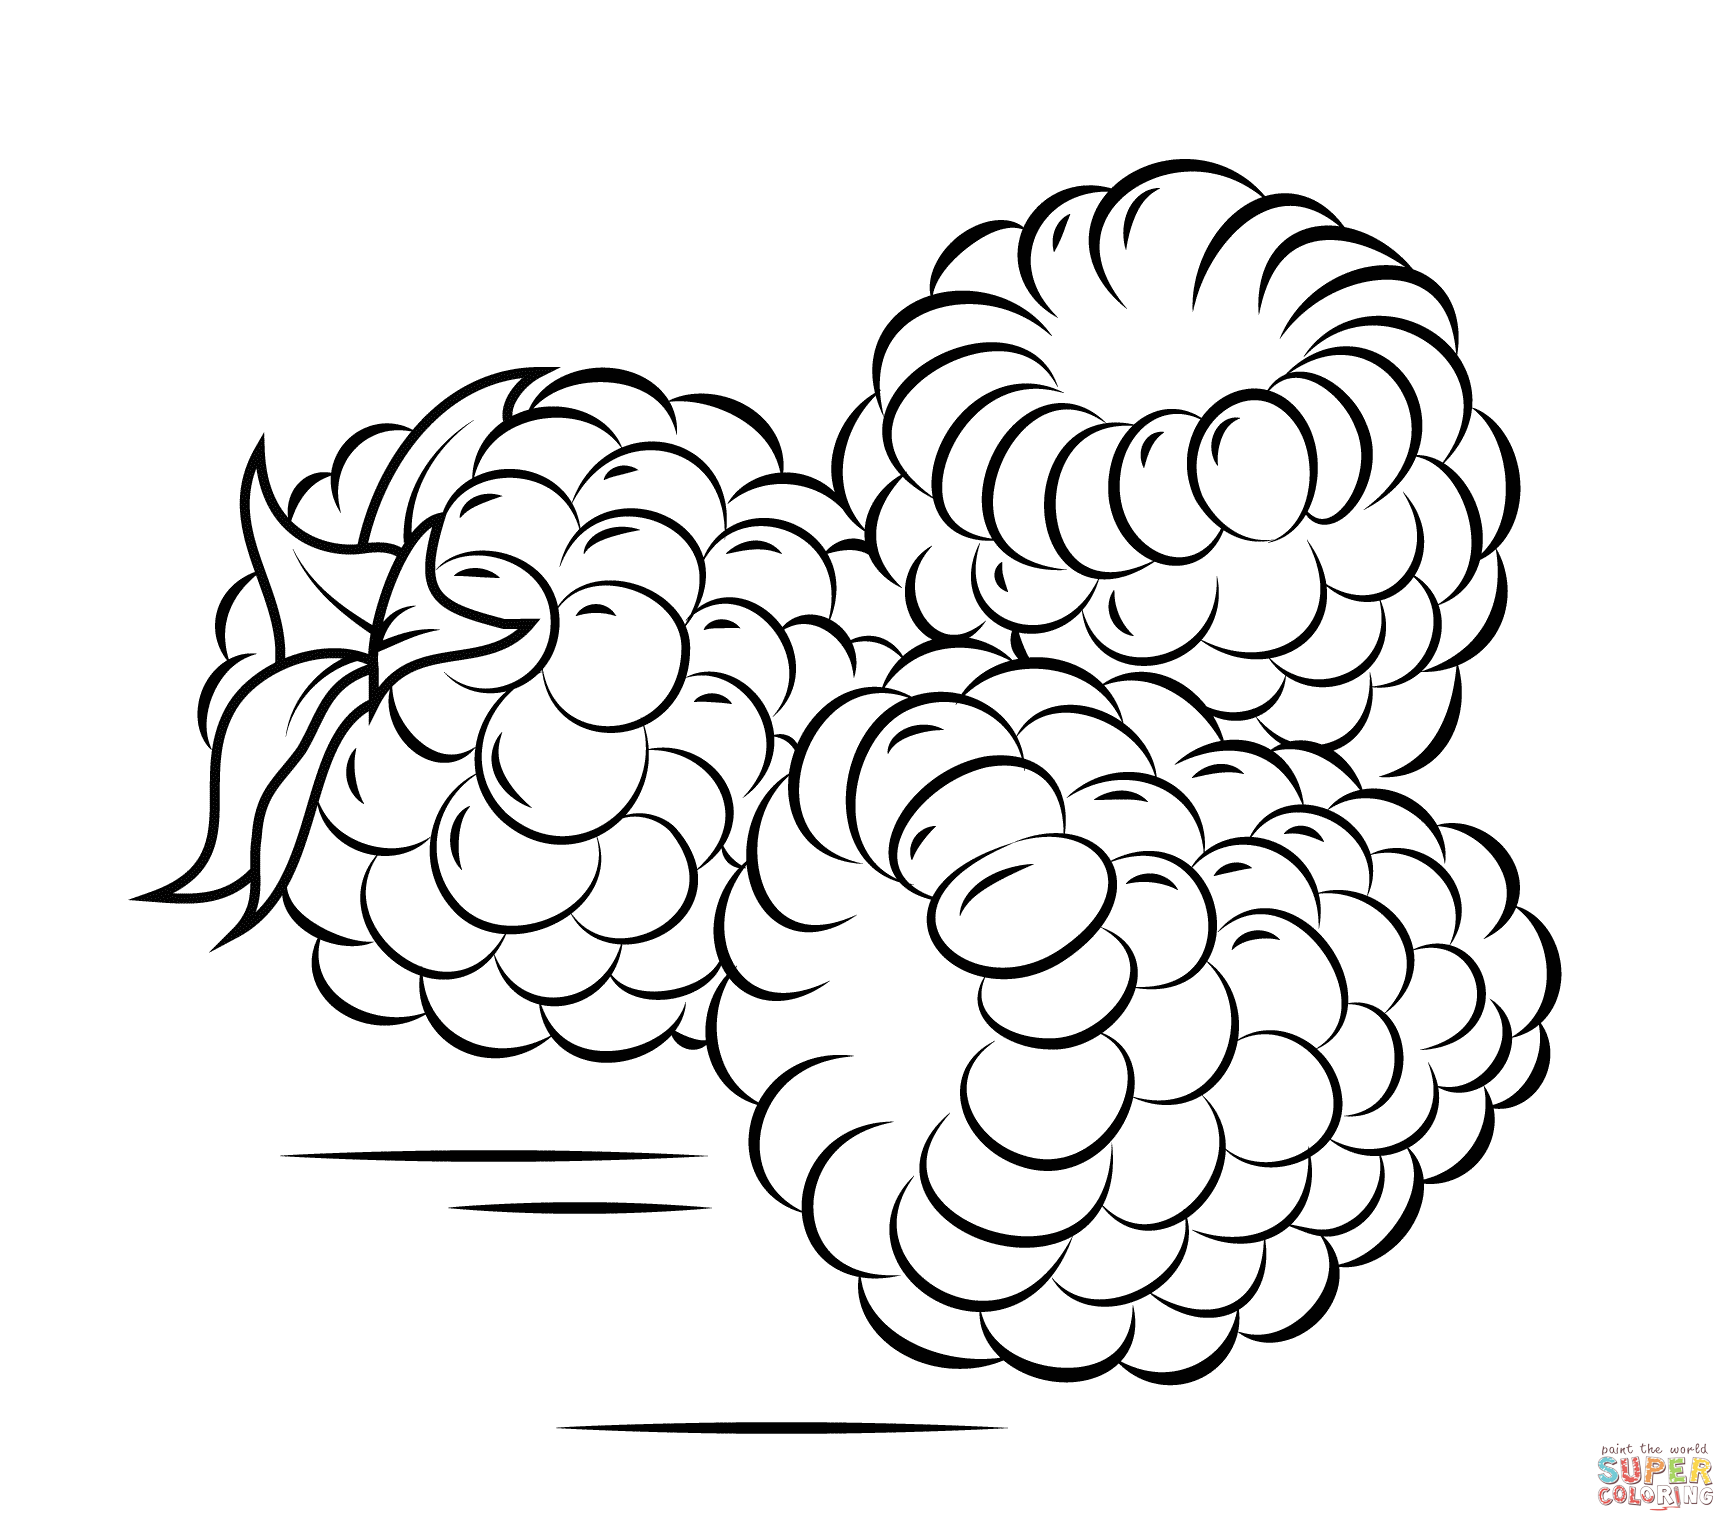 Three Raspberries Fruit Coloring Pages Bird Coloring Pages Coloring Pages